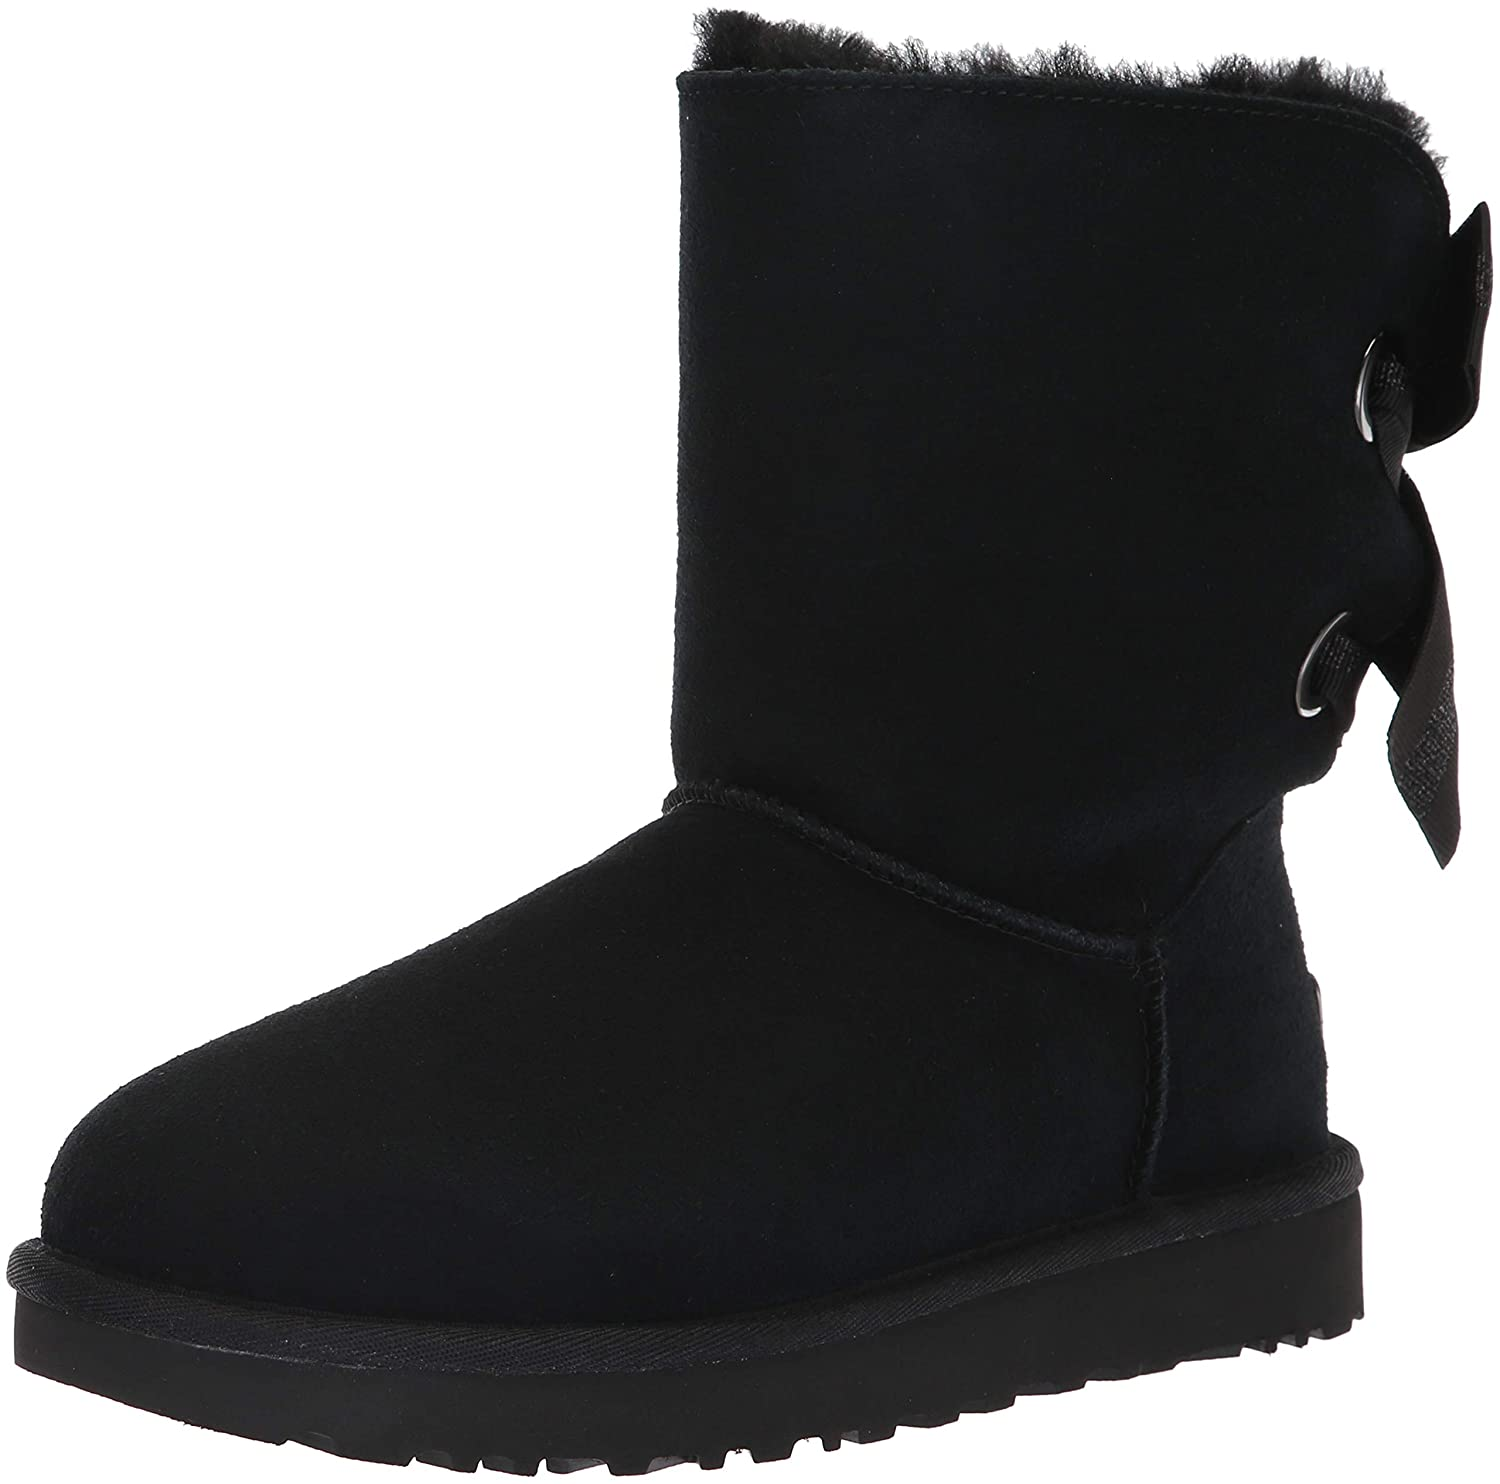 91d437e6cce UGG Women's W Customizable Bailey Bow Short Fashion Boot